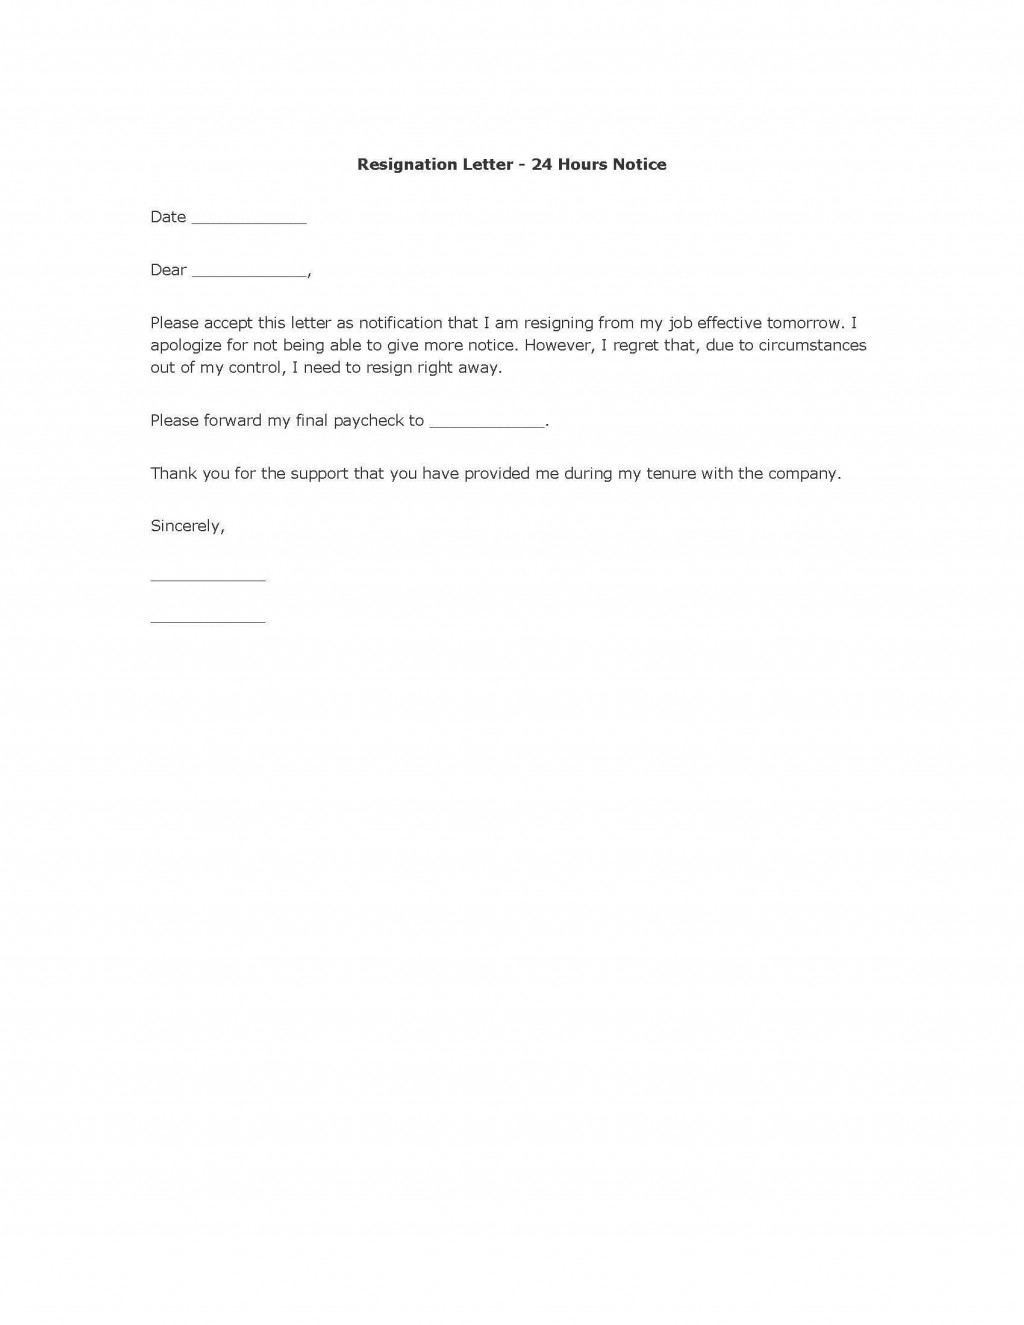 004 Unbelievable Template For Letter Of Resignation Picture  Free With Notice Period WordLarge